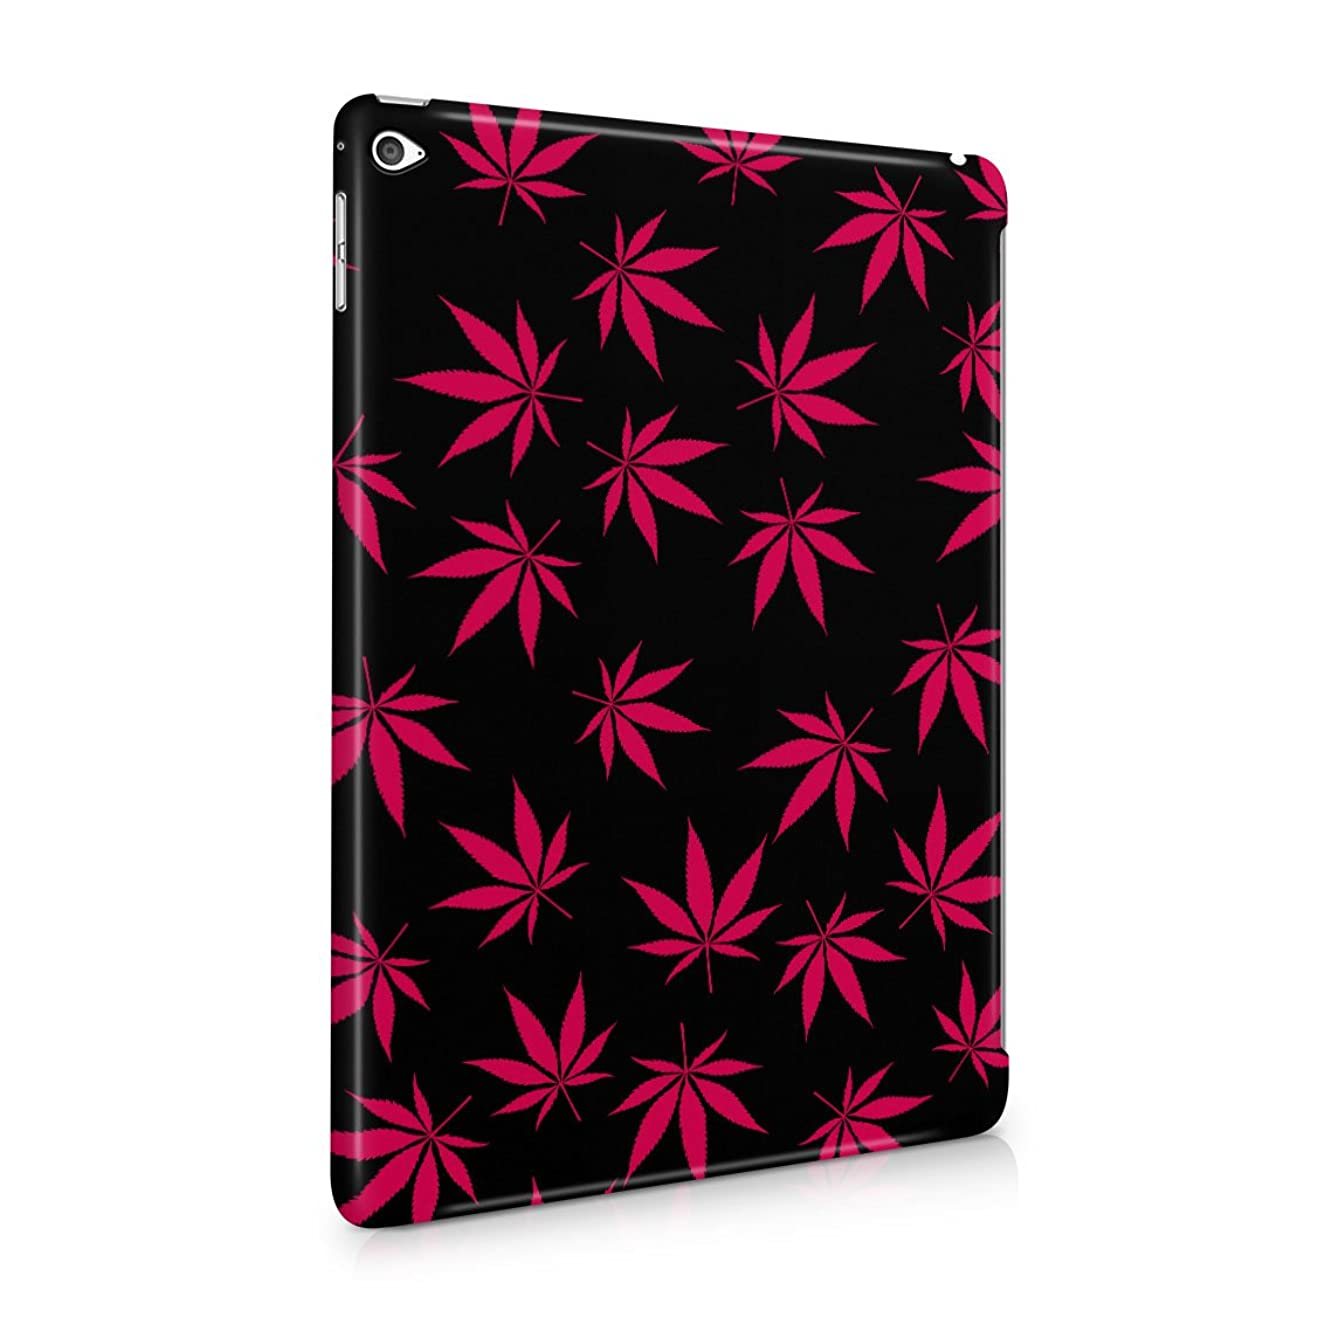 Weed Marijuana Leaf Crimson Pink Haze Pattern Plastic Tablet Snap On Back Case Cover Shell For iPad Air 2